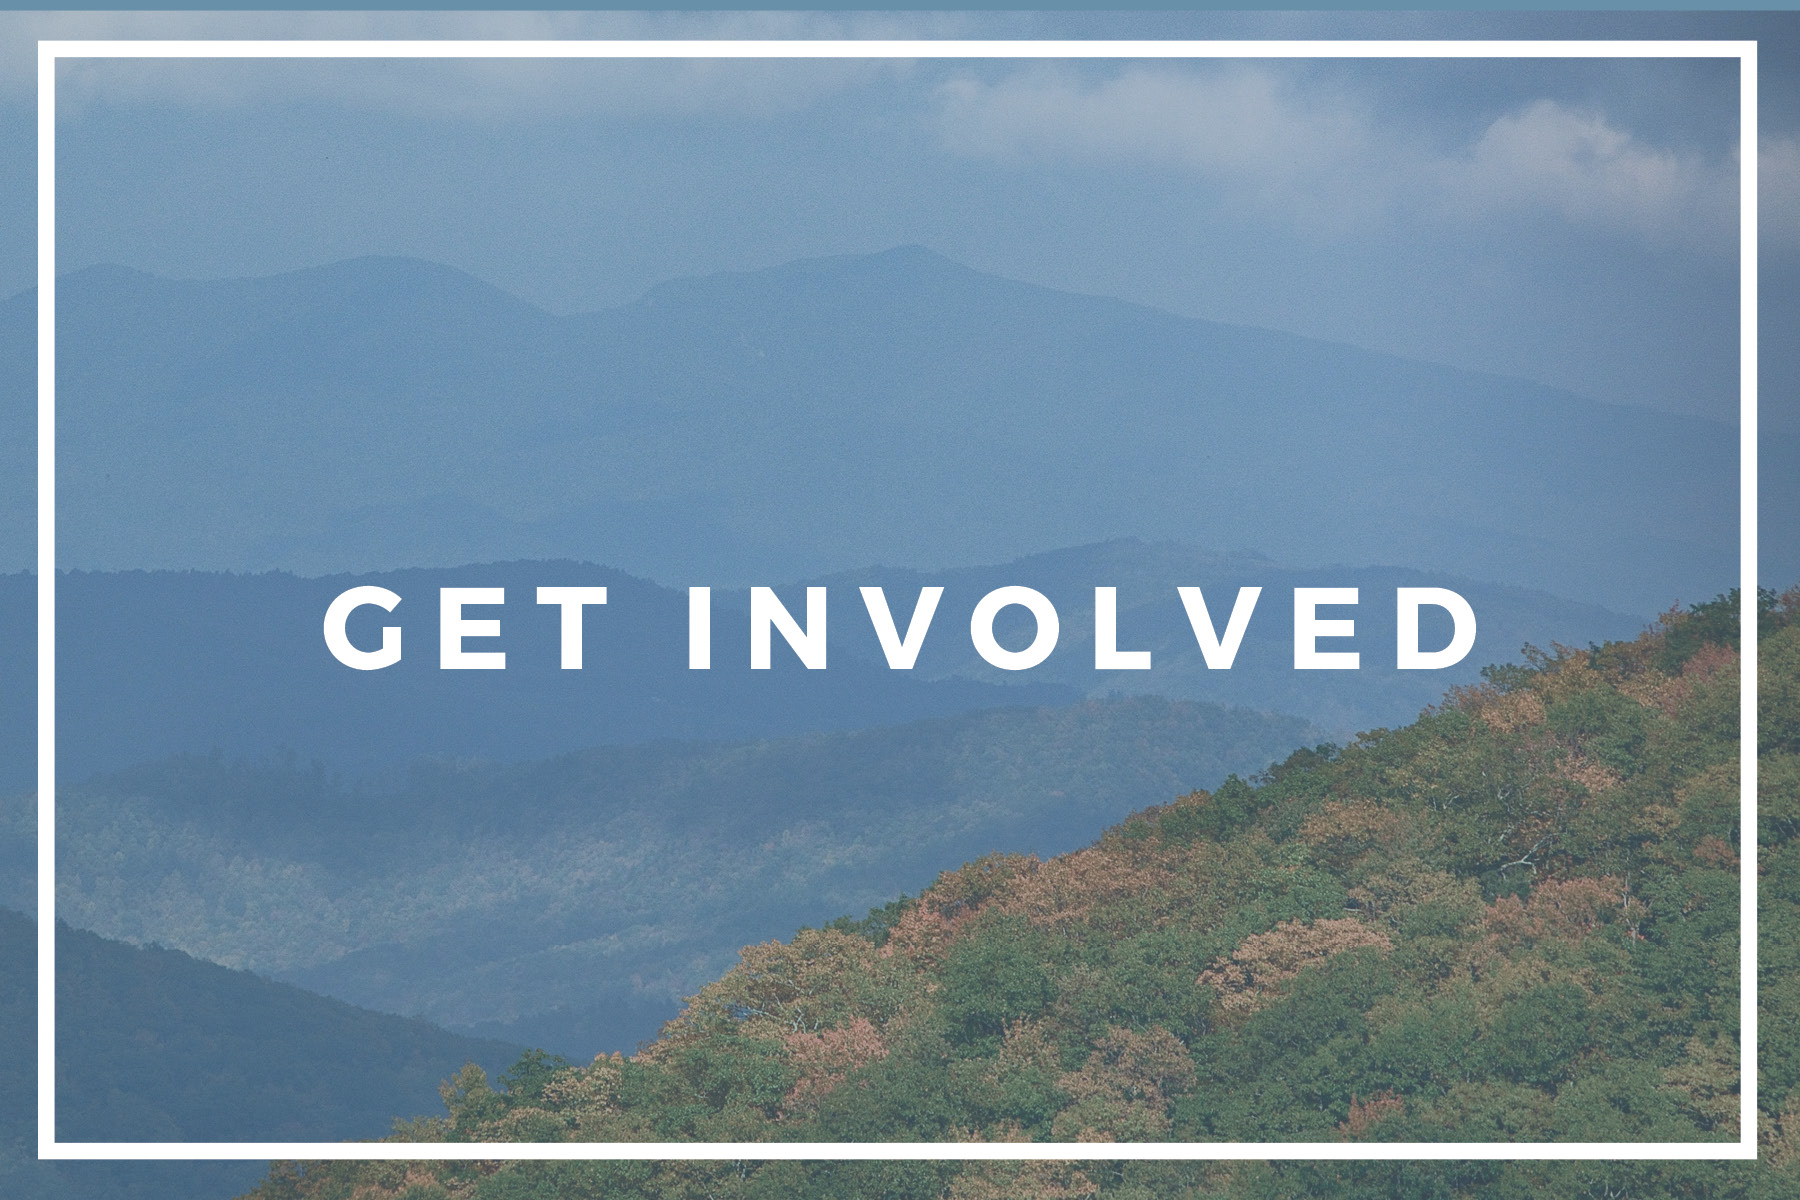 Get Involved | Blankenship for Congress